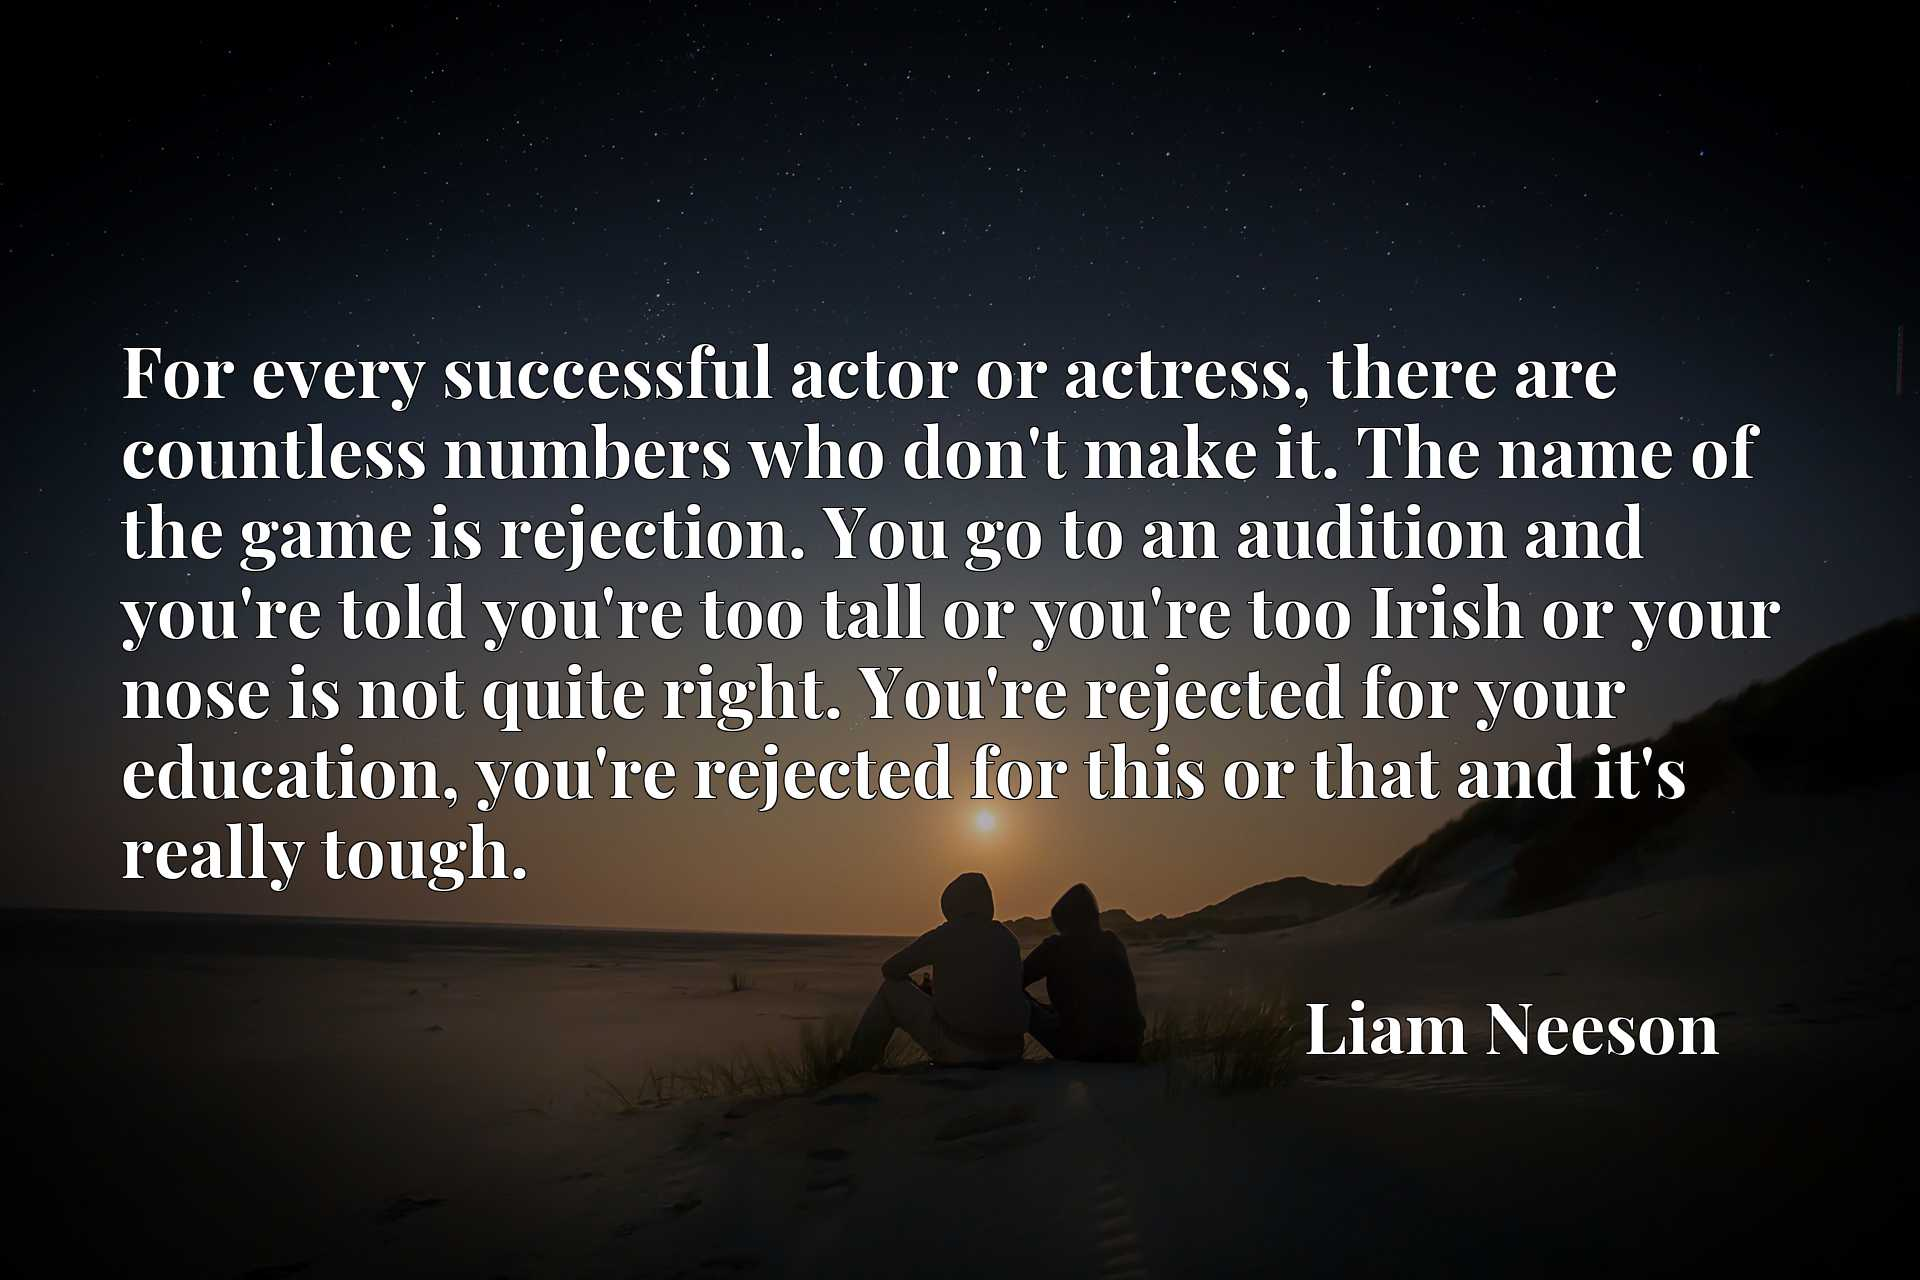 For every successful actor or actress, there are countless numbers who don't make it. The name of the game is rejection. You go to an audition and you're told you're too tall or you're too Irish or your nose is not quite right. You're rejected for your education, you're rejected for this or that and it's really tough.